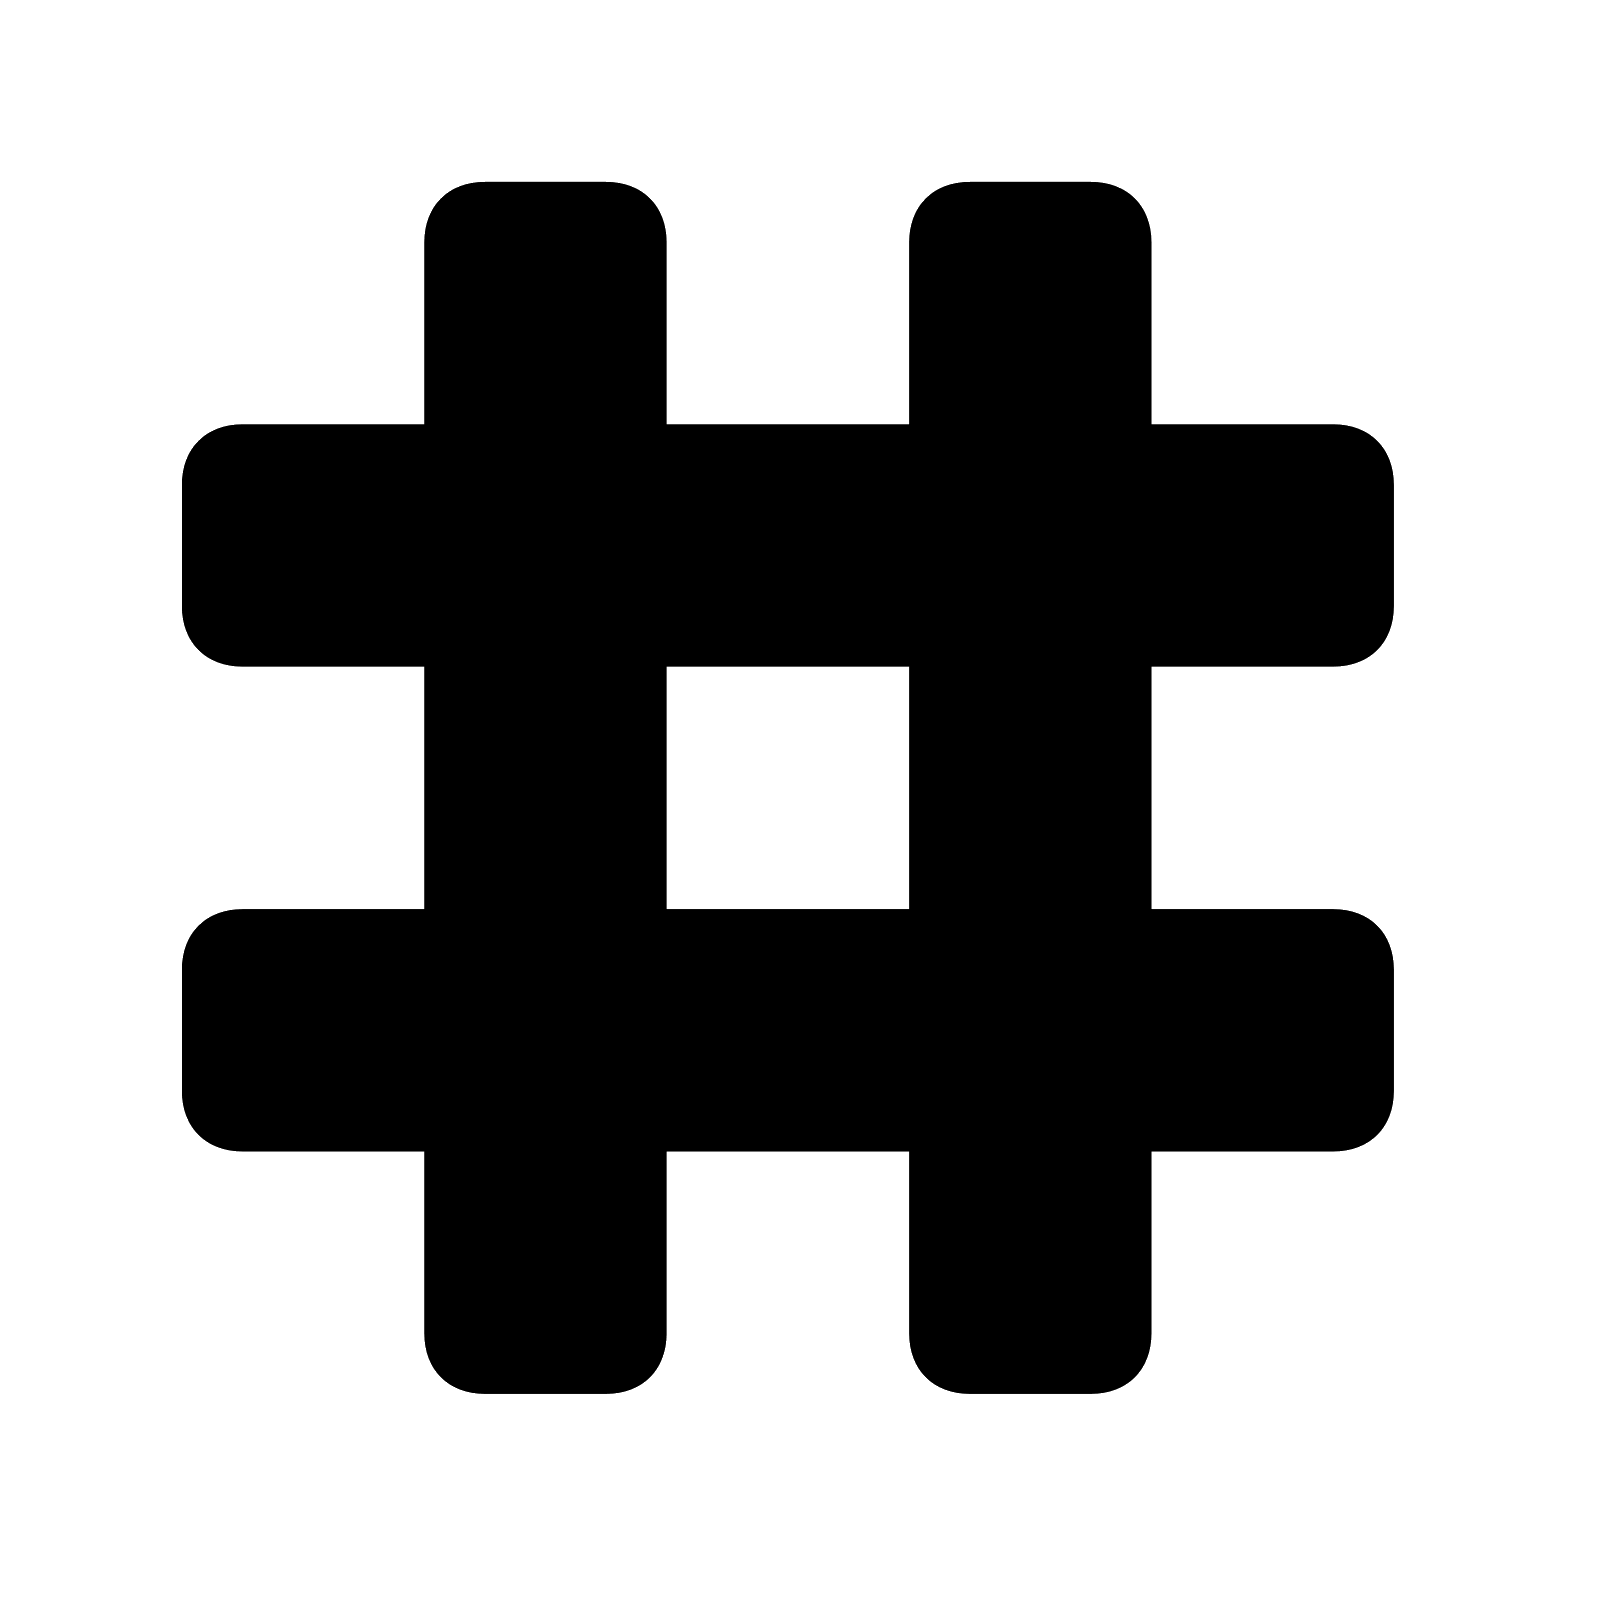 In javascript it is possible to get and set url hash parameters using following logic. Hash calculator